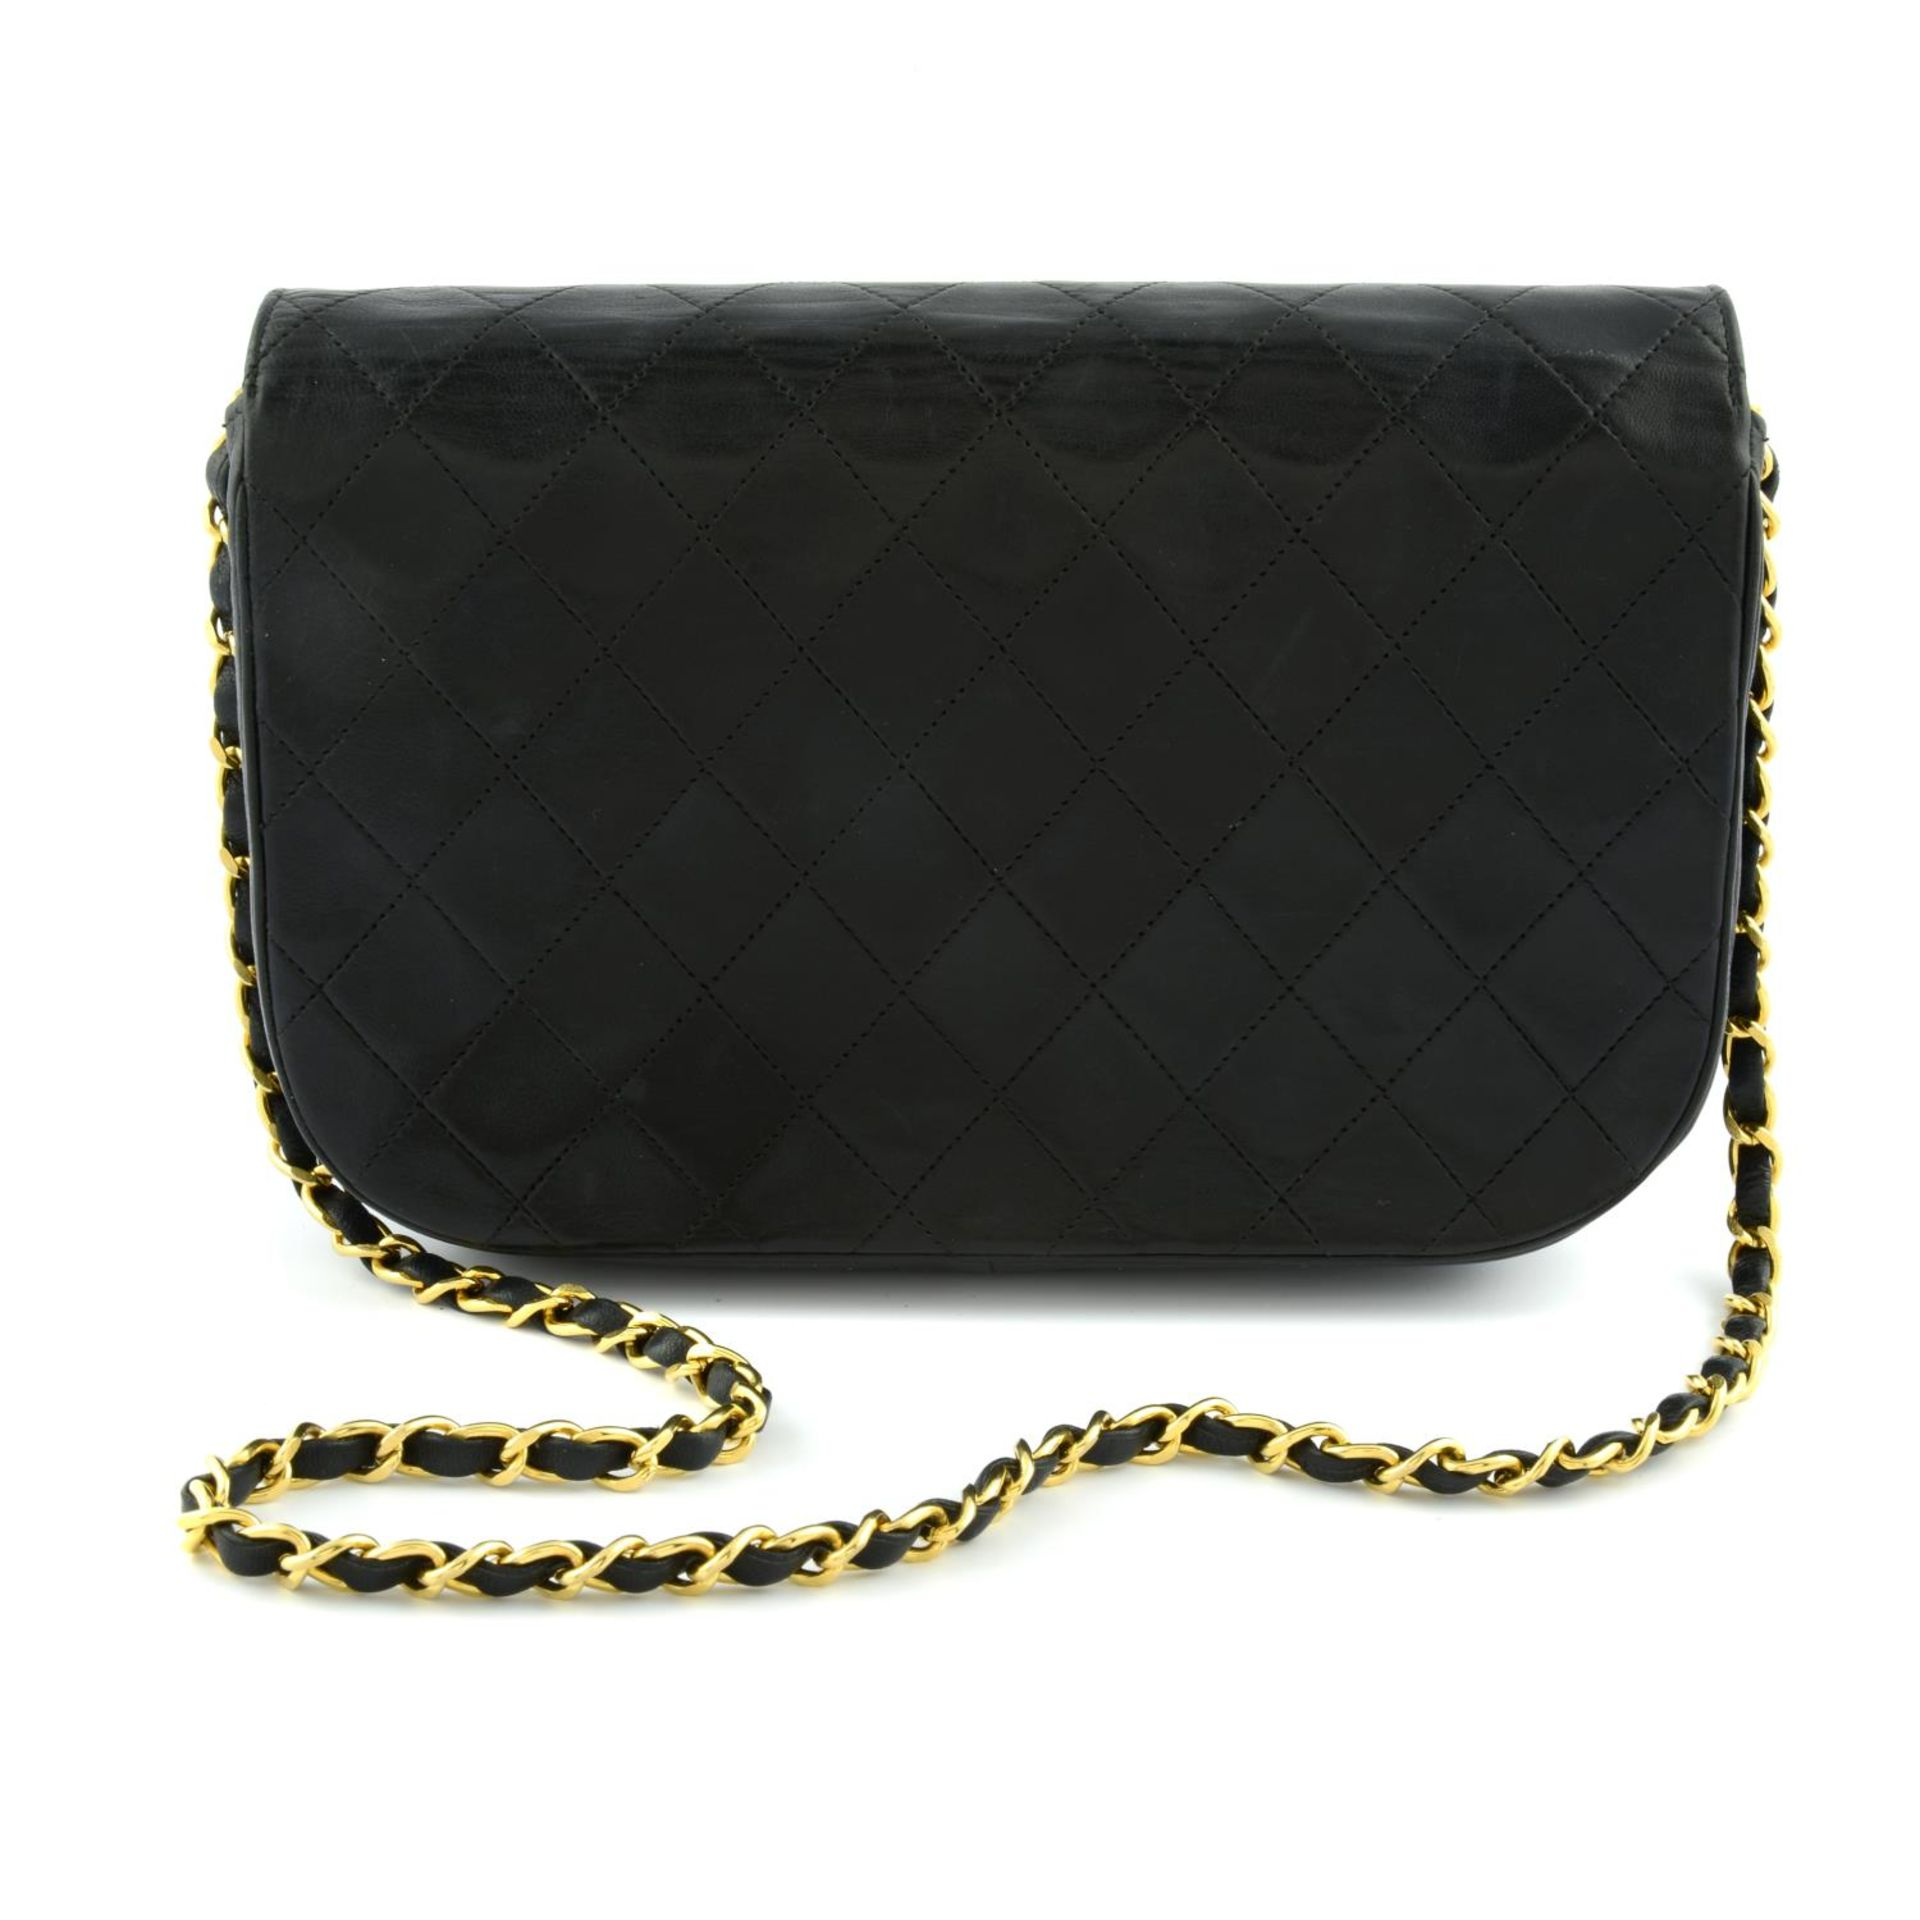 CHANEL - a leather double flap handbag. - Image 2 of 5